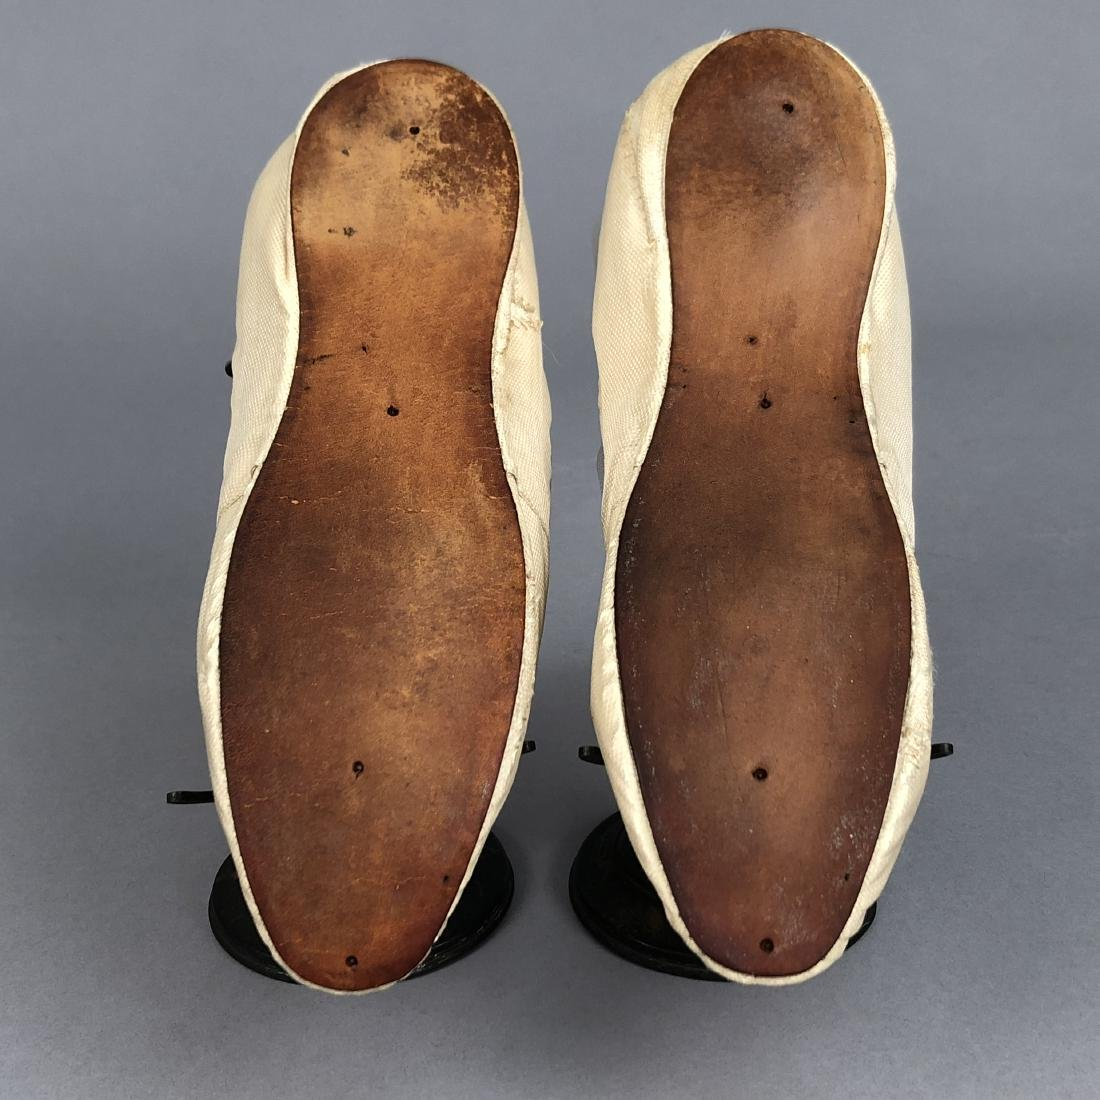 FIGURED SILK SHOES with METALLIC EMBROIDERY, c. 1800 - 3